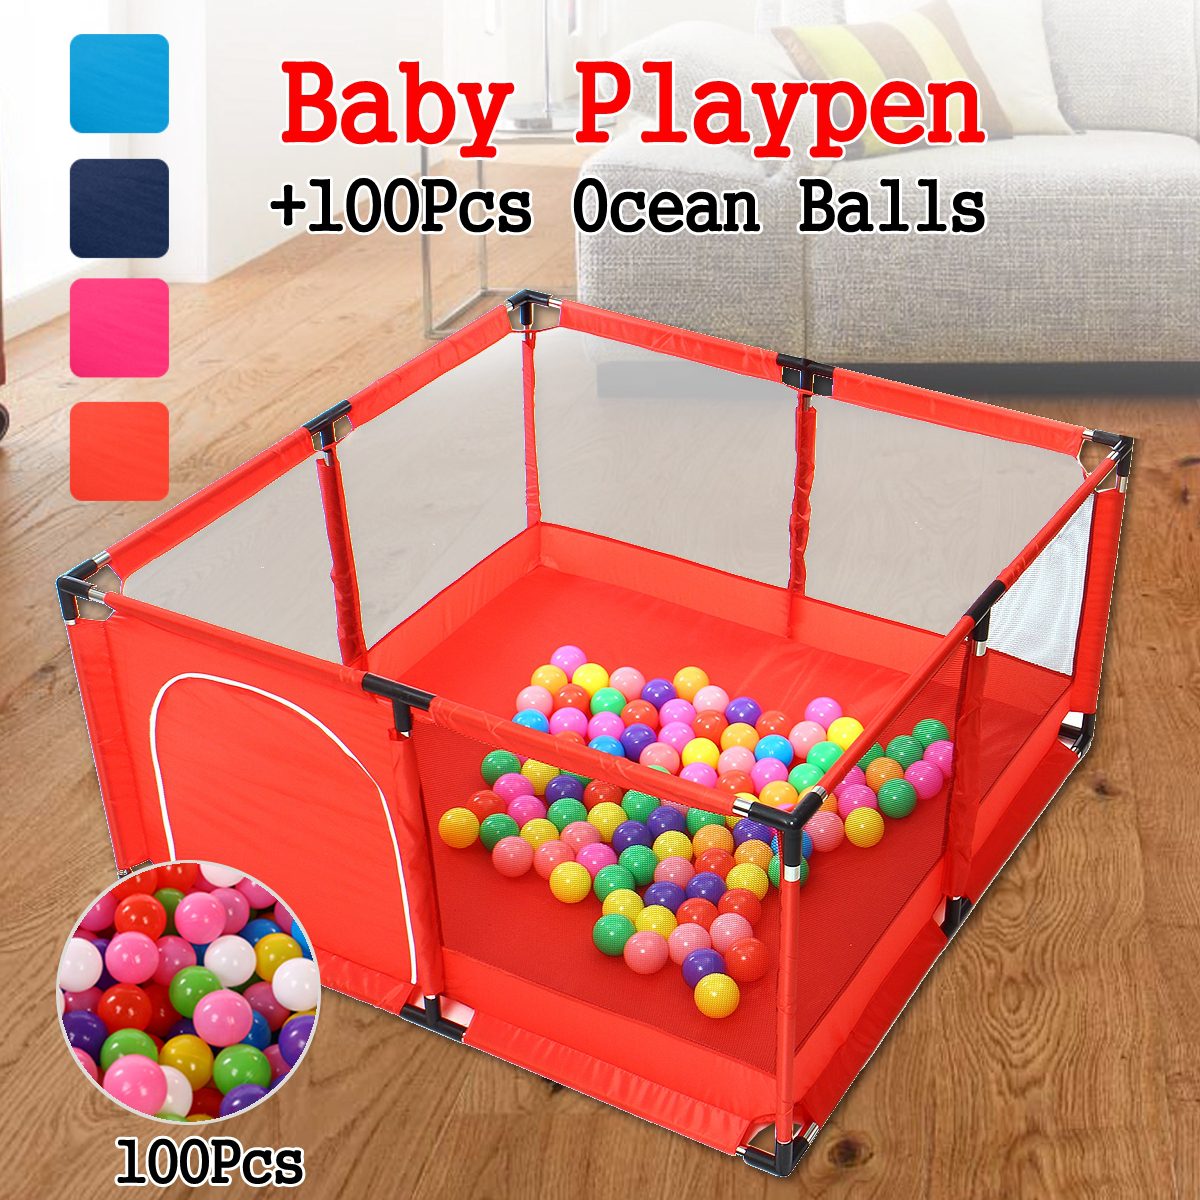 Bioby Baby Playpen For Children Pool Balls For Newborn Baby Fence Playpen For Baby Pool Children Playpen Kids Safety Barrier